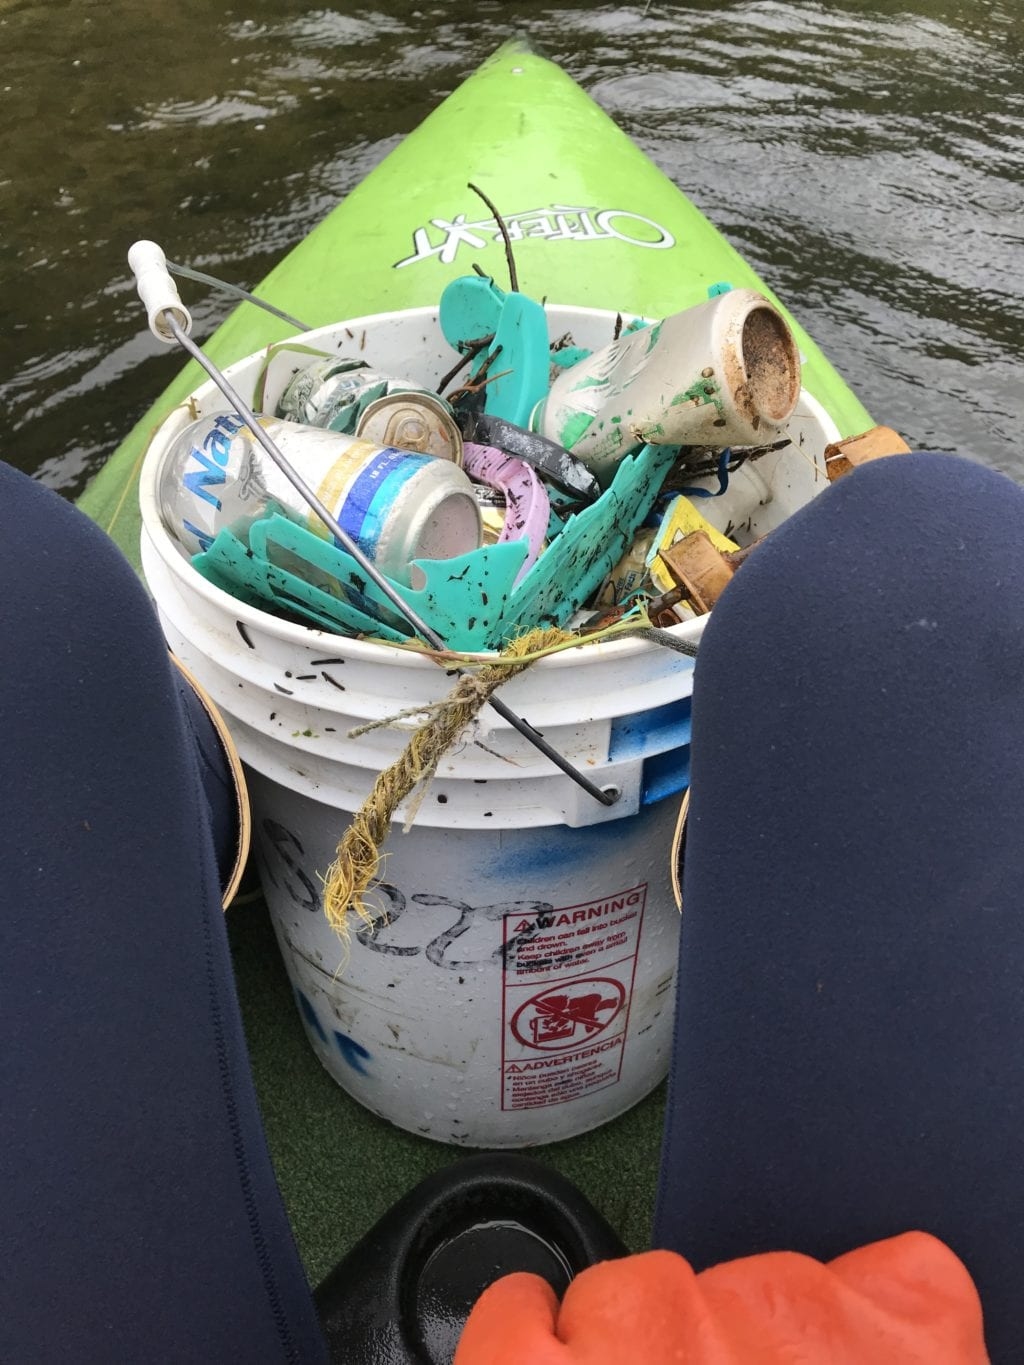 A bucket of garbage retrieved from Eyak Lake. The Saturday, July 27, 2019, cleanup organized by the Copper River Watershed Project and the Forest Service removed 12 cubic yards of waste from around Eyak Lake. Photo courtesy Bella Thurber